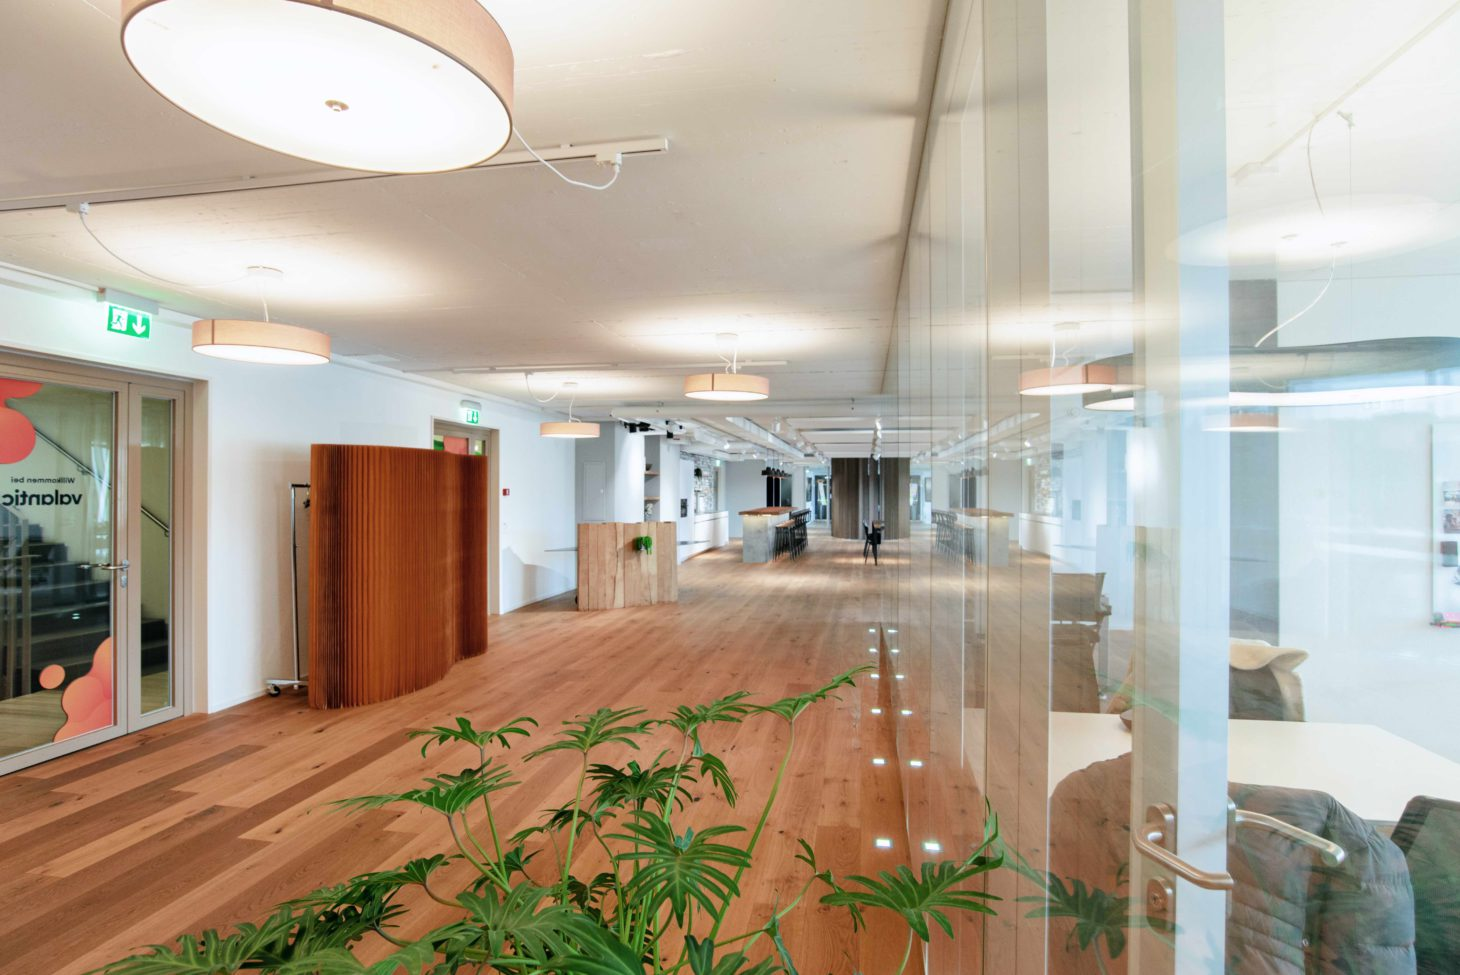 Picture of office space, valantic Customer Engagement & Commerce (CEC) Switzerland branch in St. Gallen